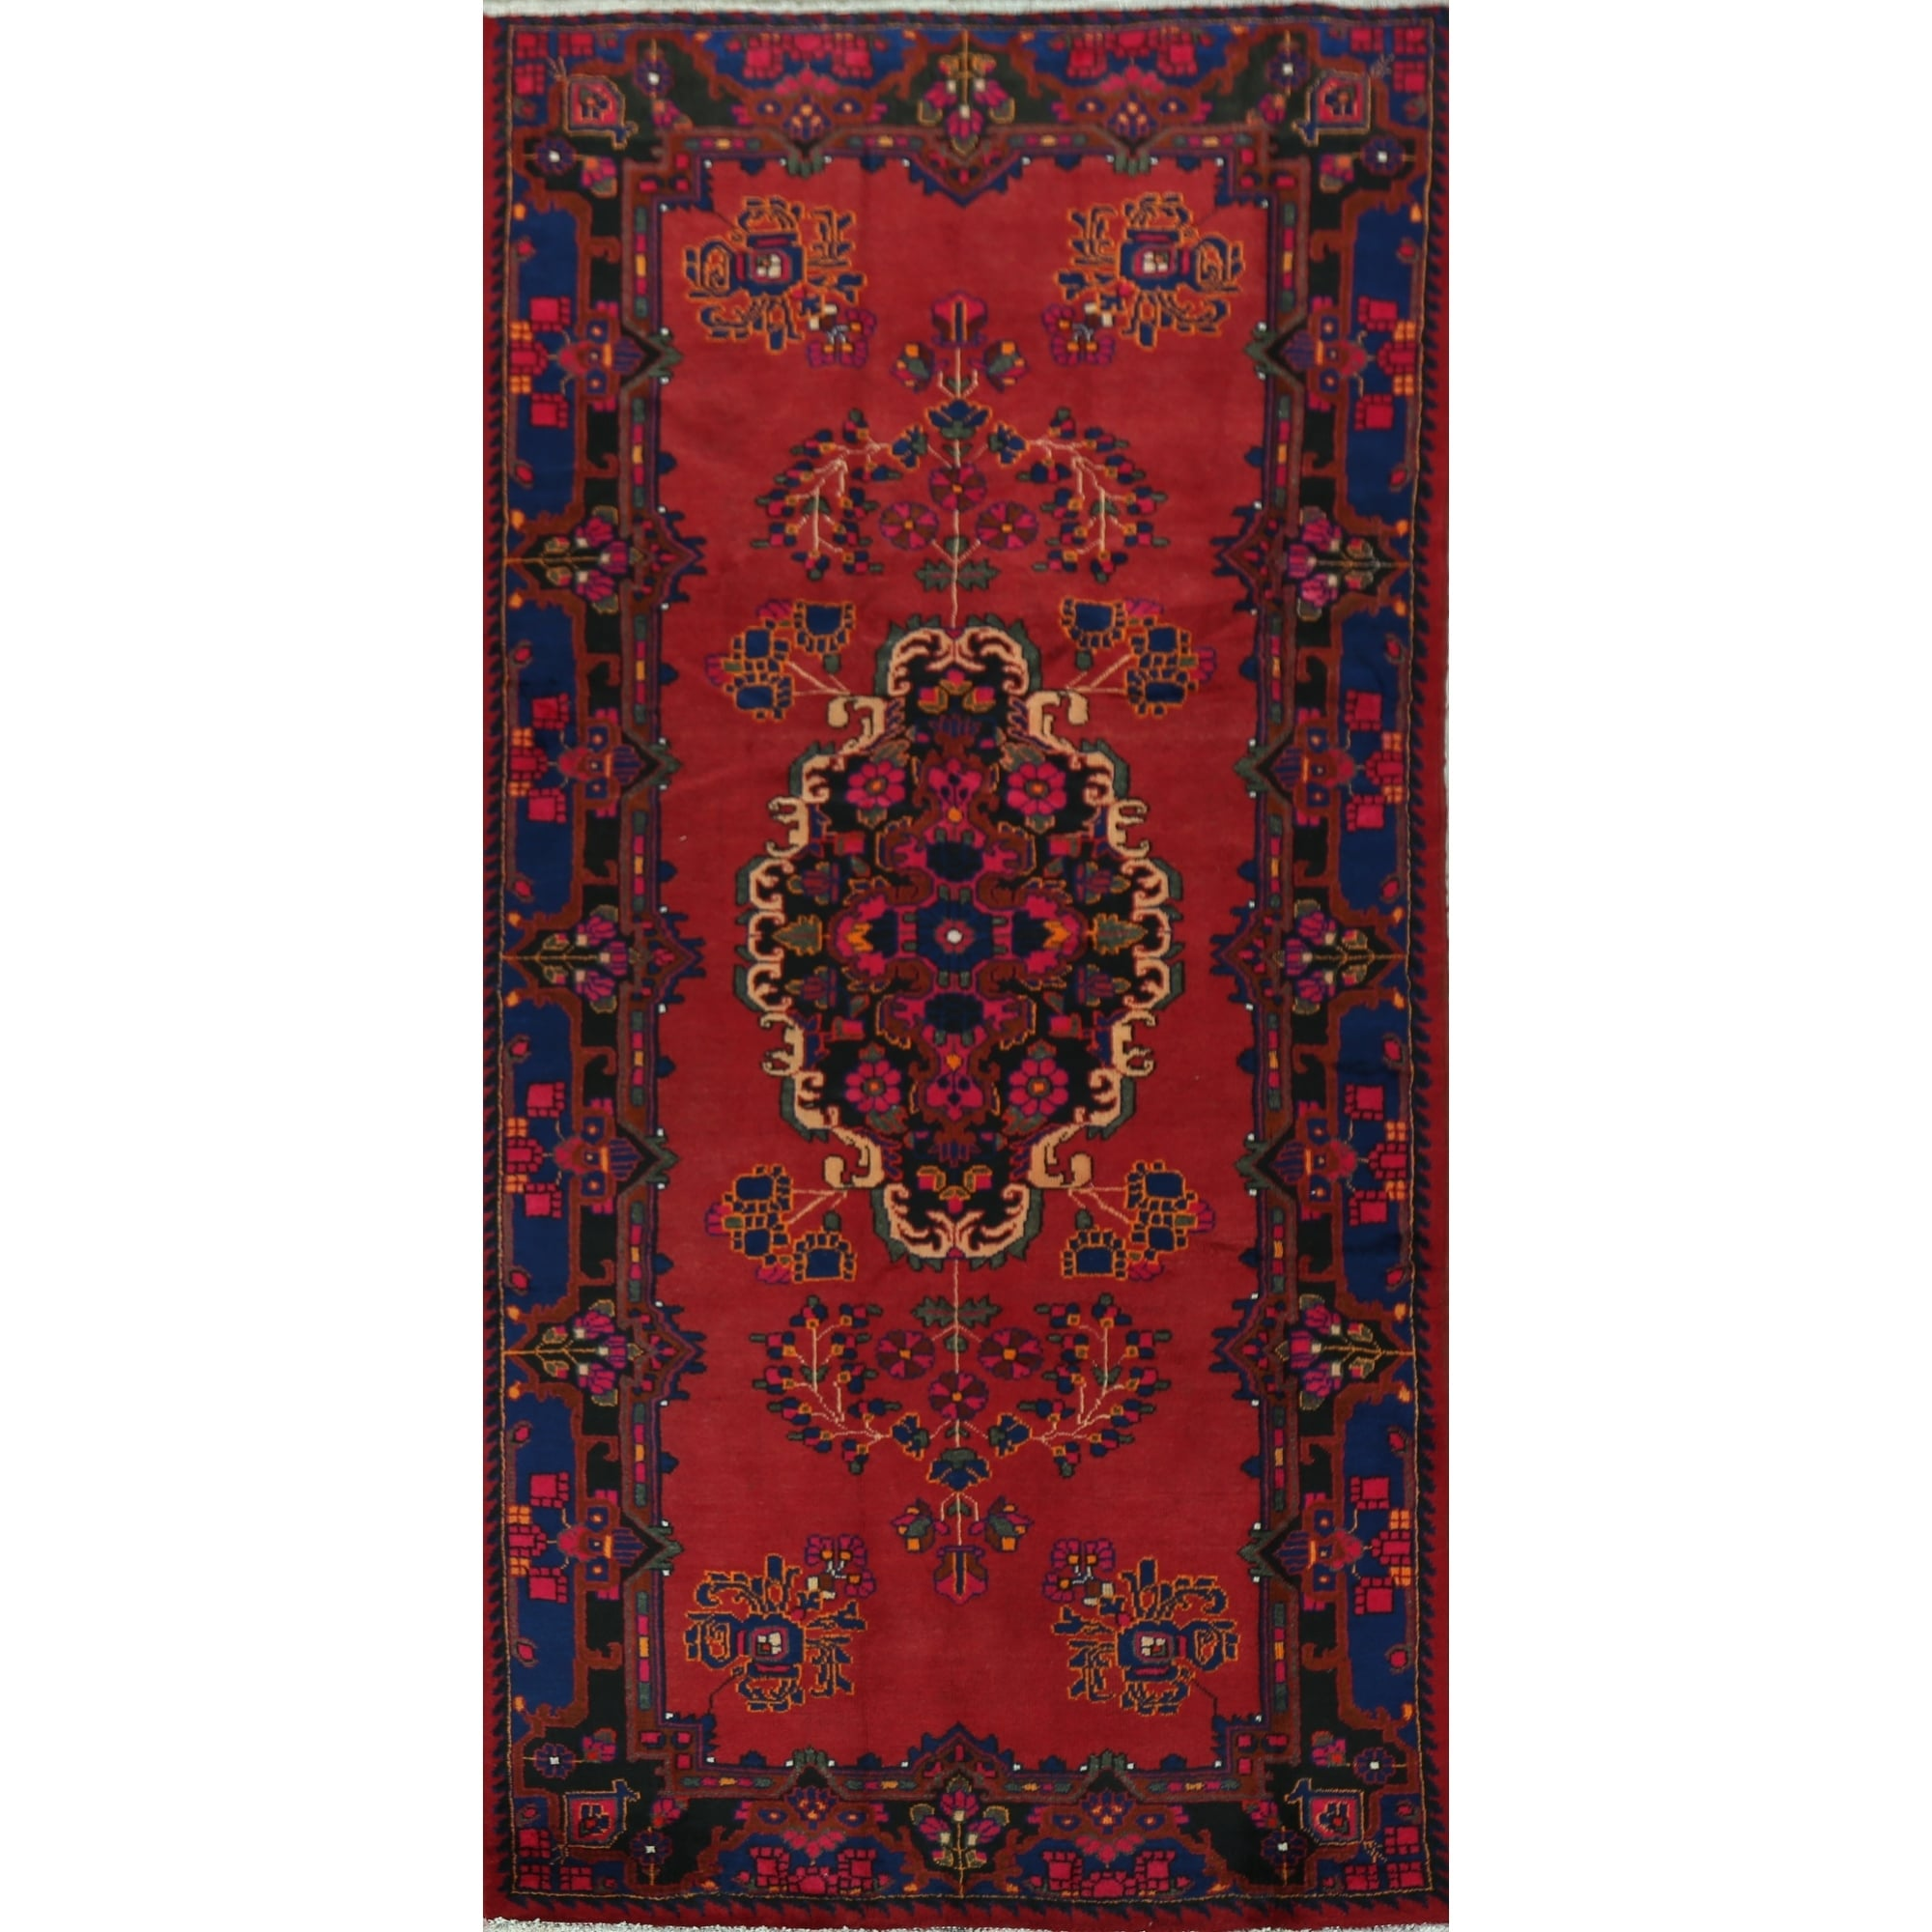 Geometric Red Lilian Persian Area Rug Hand Knotted Office Carpet 4 10 X 9 11 On Sale Overstock 31058253